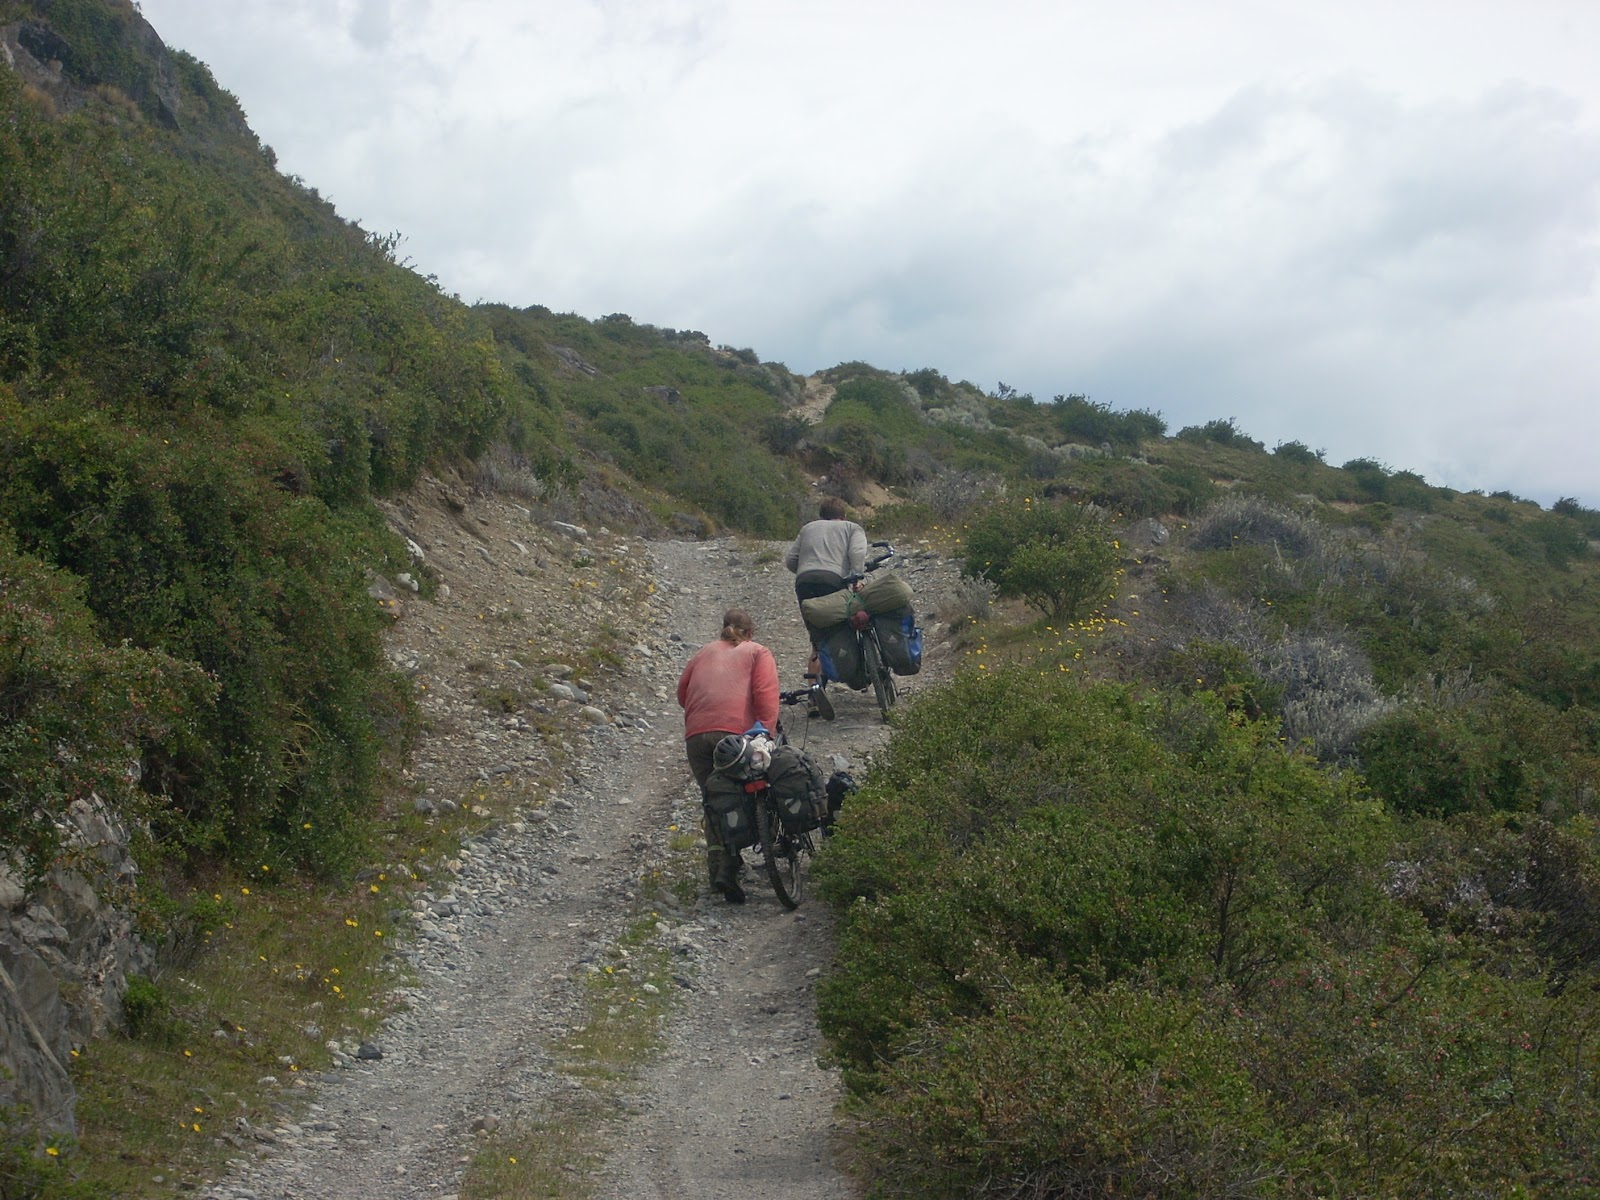 This was actually an easy part. Note the wide, dry road, even if we did have to push